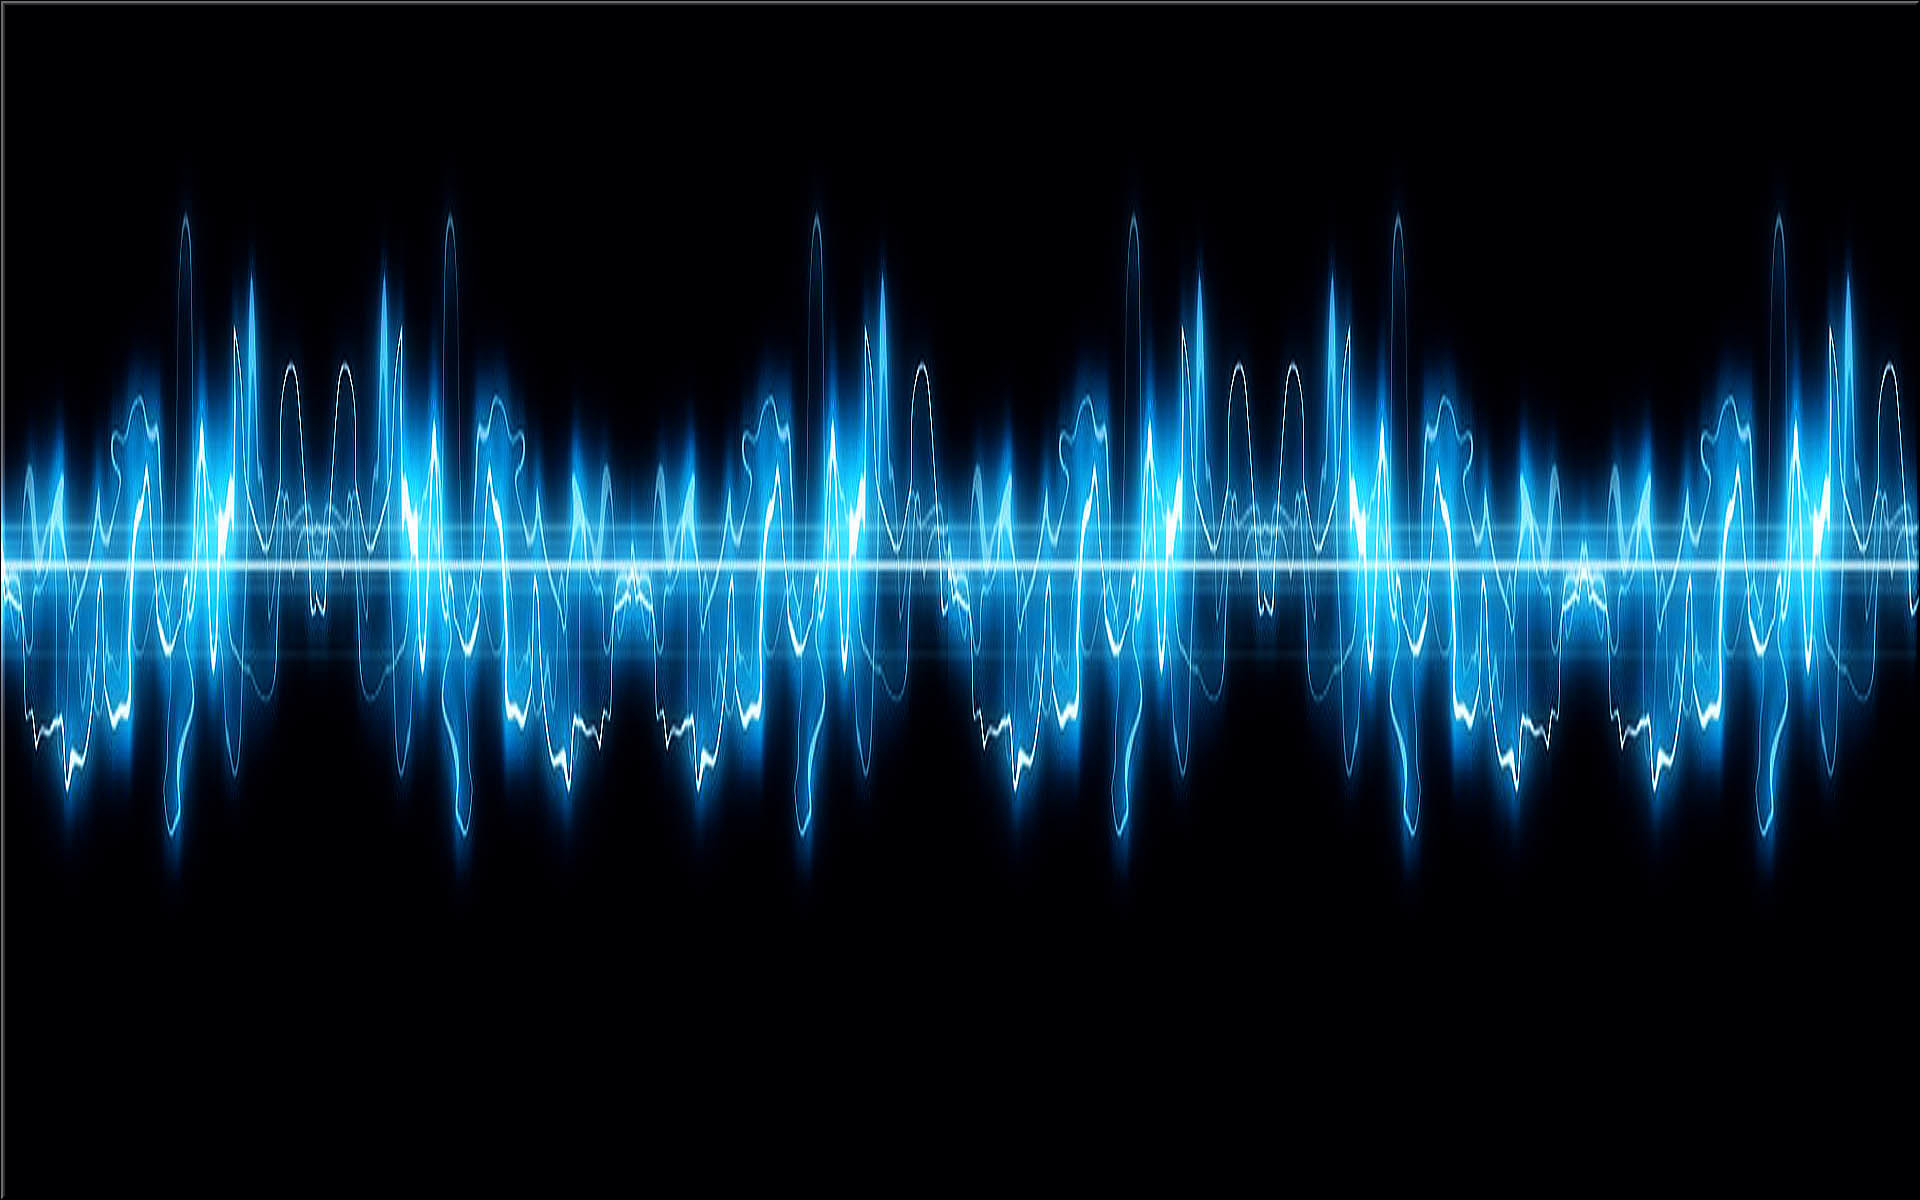 Moving Sound Waves Wallpaper HD Wallpapers on picsfair.com